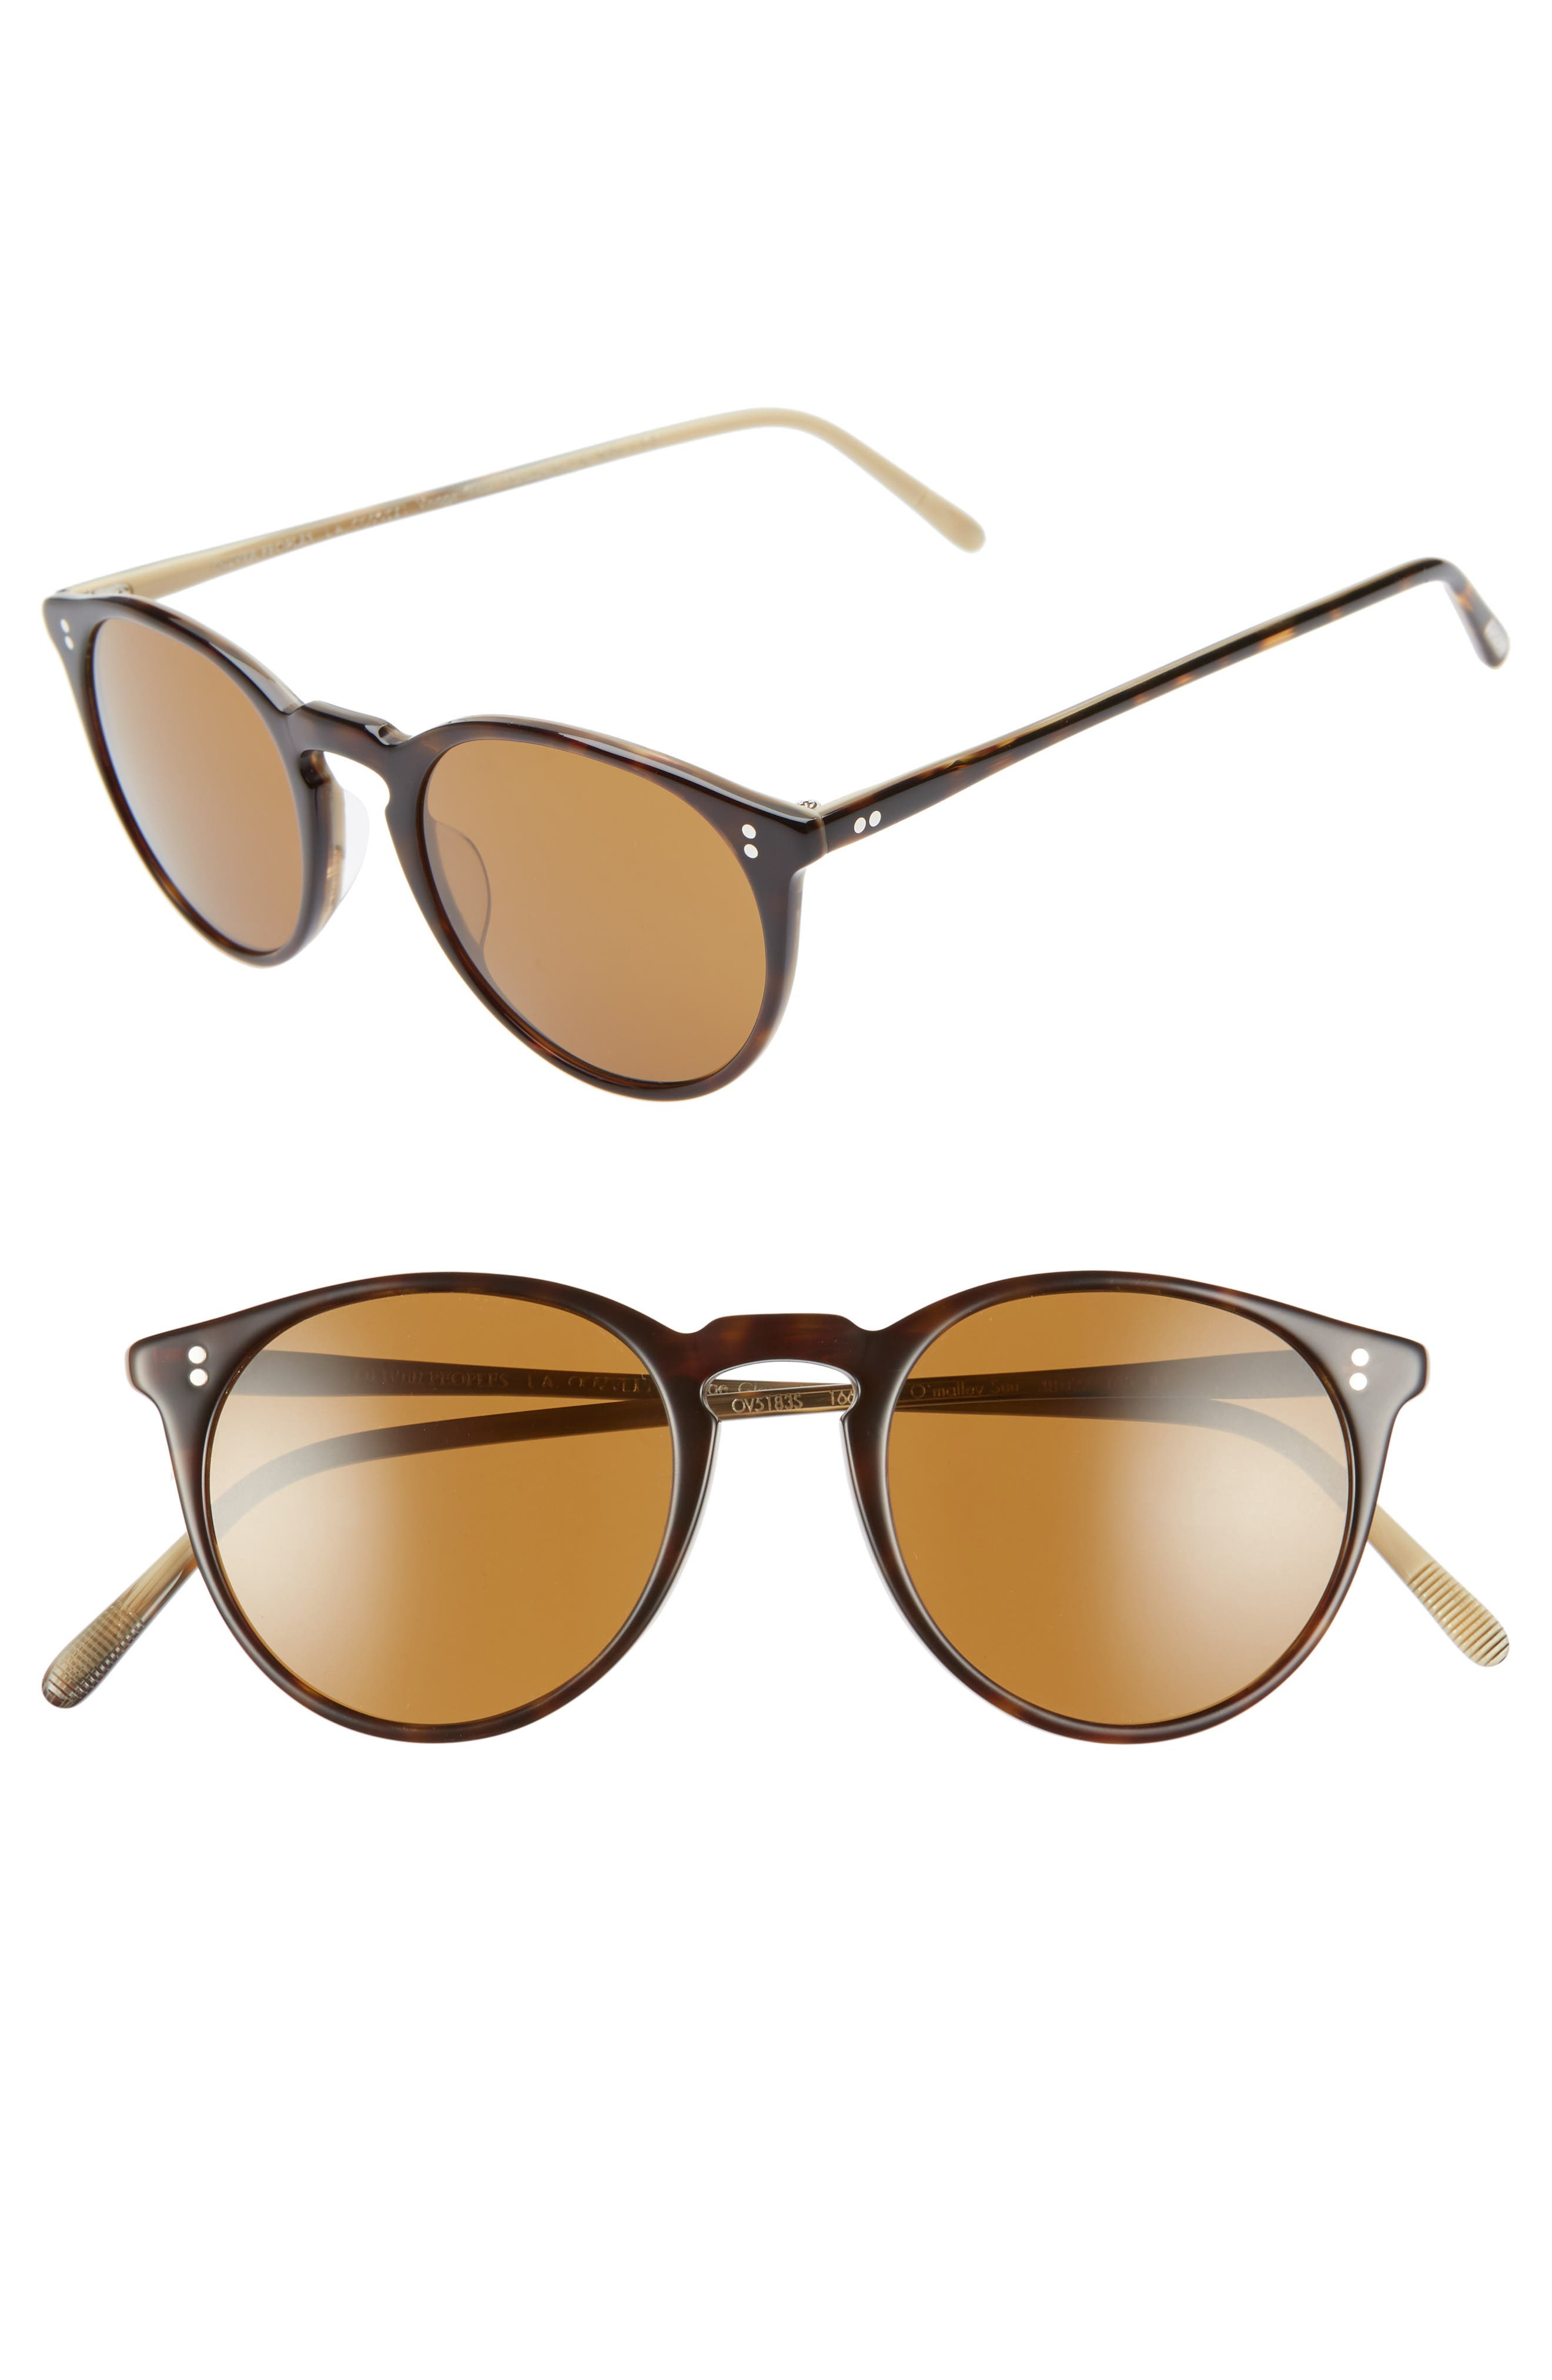 O'Malley 48mm Round Sunglasses,                             Main thumbnail 1, color,                             HORN BROWN